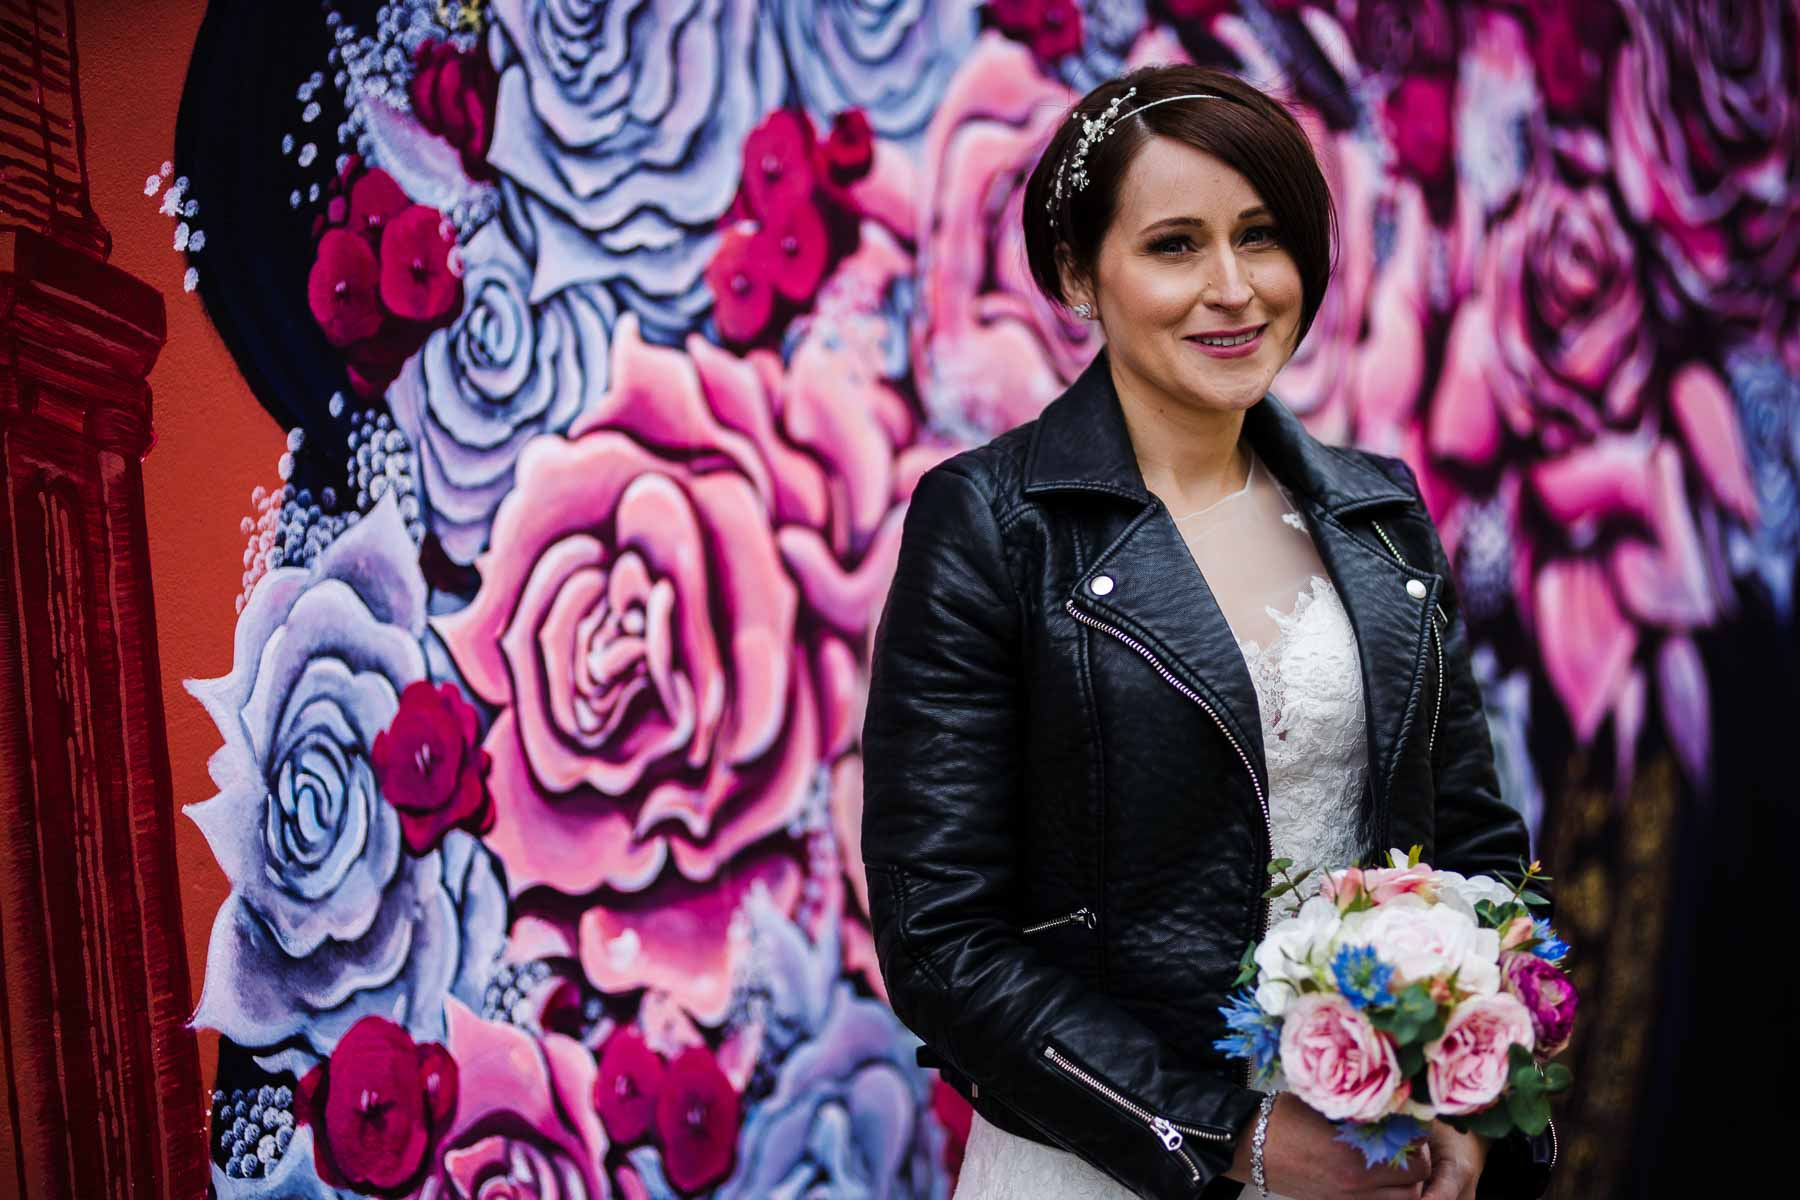 Buckinghamshire wedding photography of Claire in her leather jacket standing next to grafitti